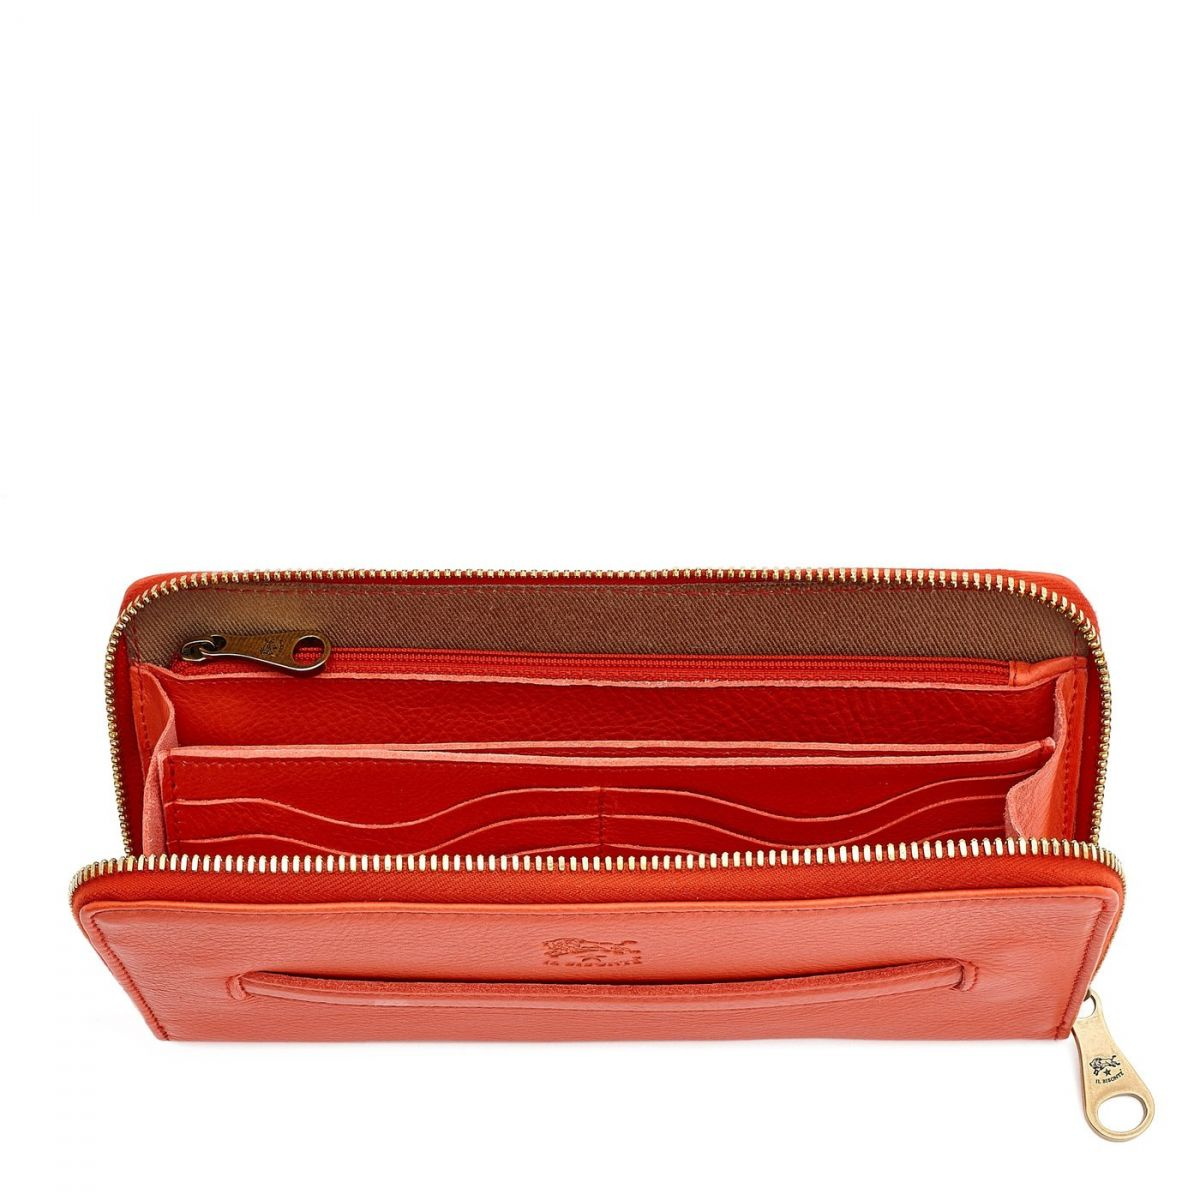 Women's Zip Around Wallet  in Cowhide Leather SZW028 color Gazpacho | Details